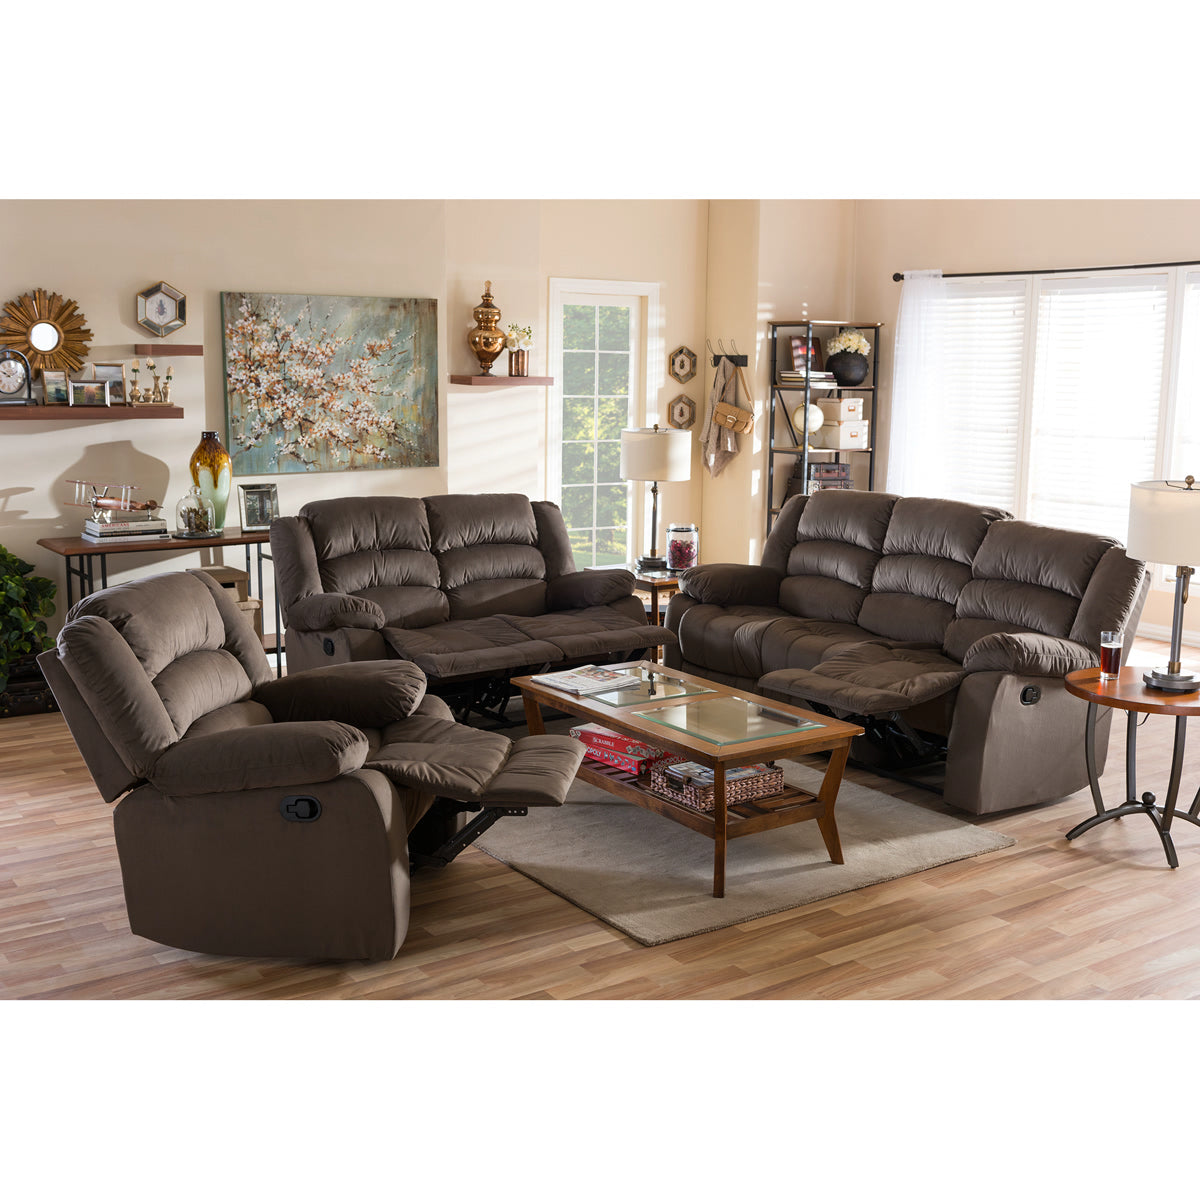 Baxton Studio Hollace Modern and Contemporary Taupe Microsuede Sofa Loveseat and Chair Set with 5 Recliners Living room Set Baxton Studio--Minimal And Modern - 1